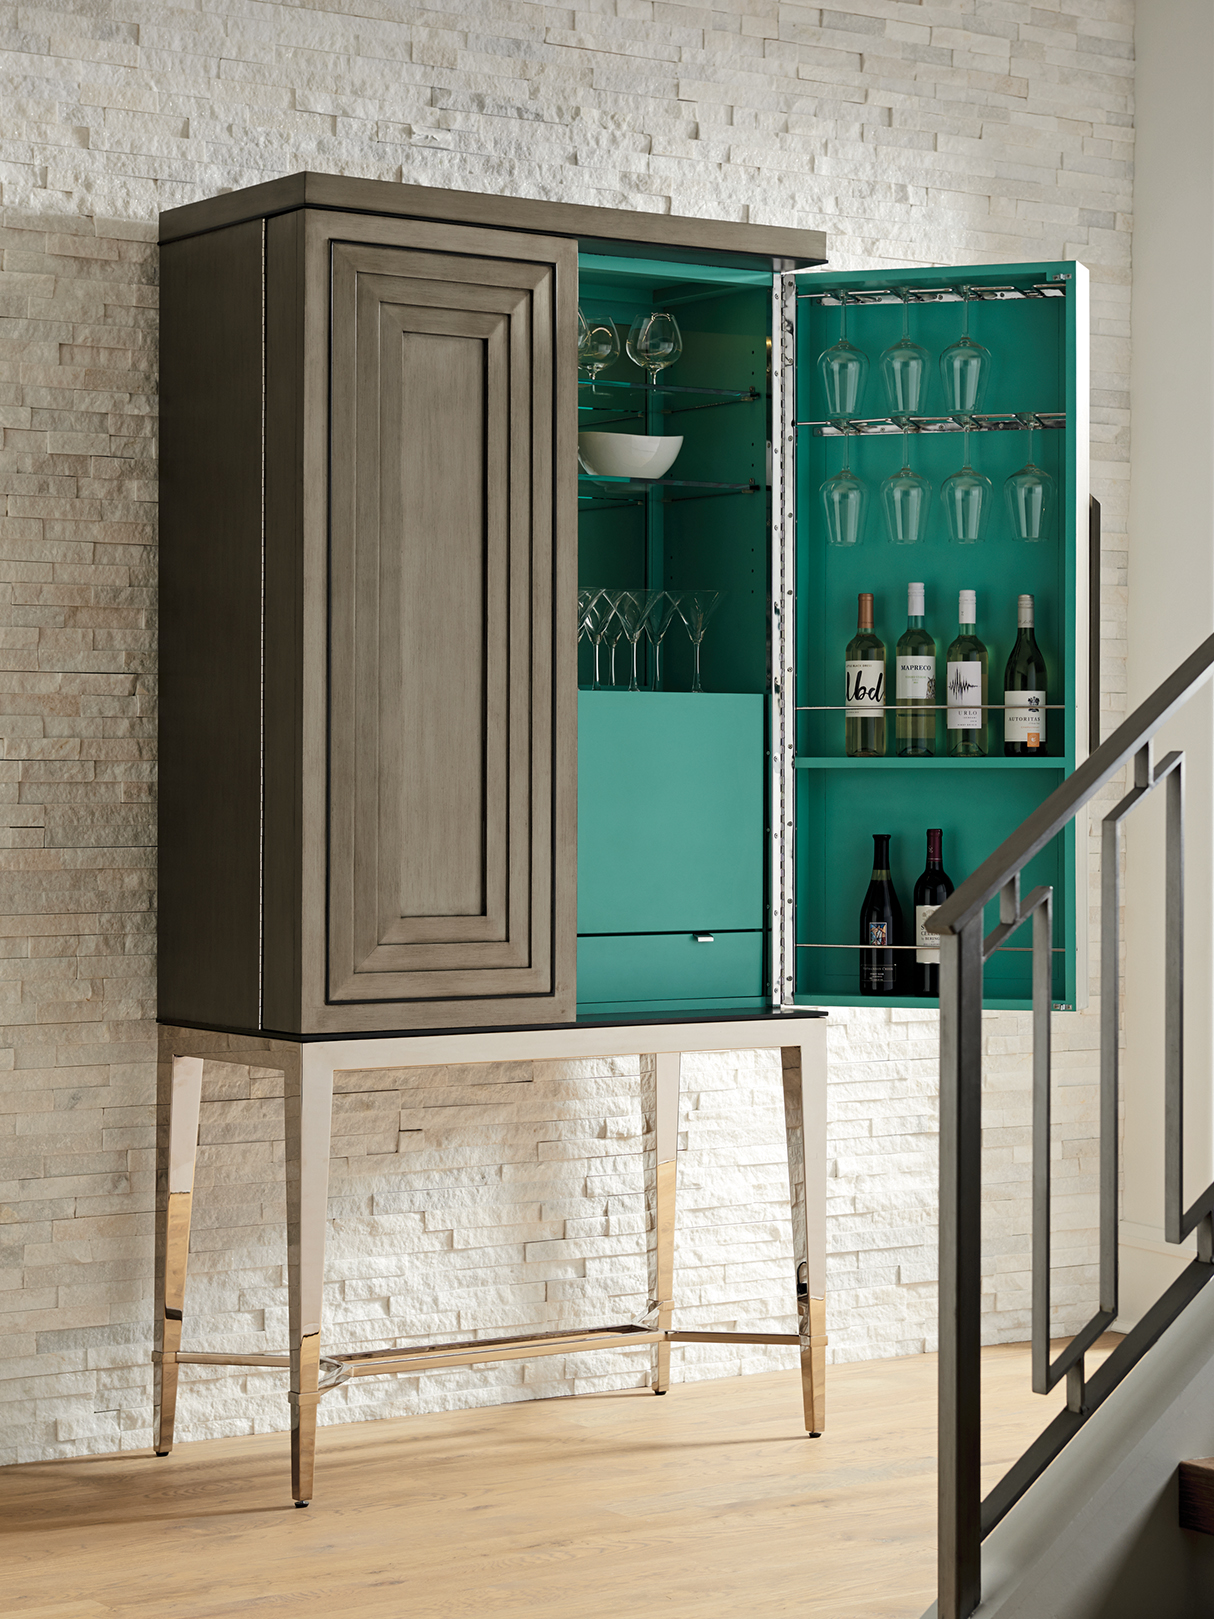 Make the most of your entertaining space by storing bar items in beautiful furniture-like pieces. When not in use, they enhance the look of your room and then open up to provide the perfect drink station when the party gets going.